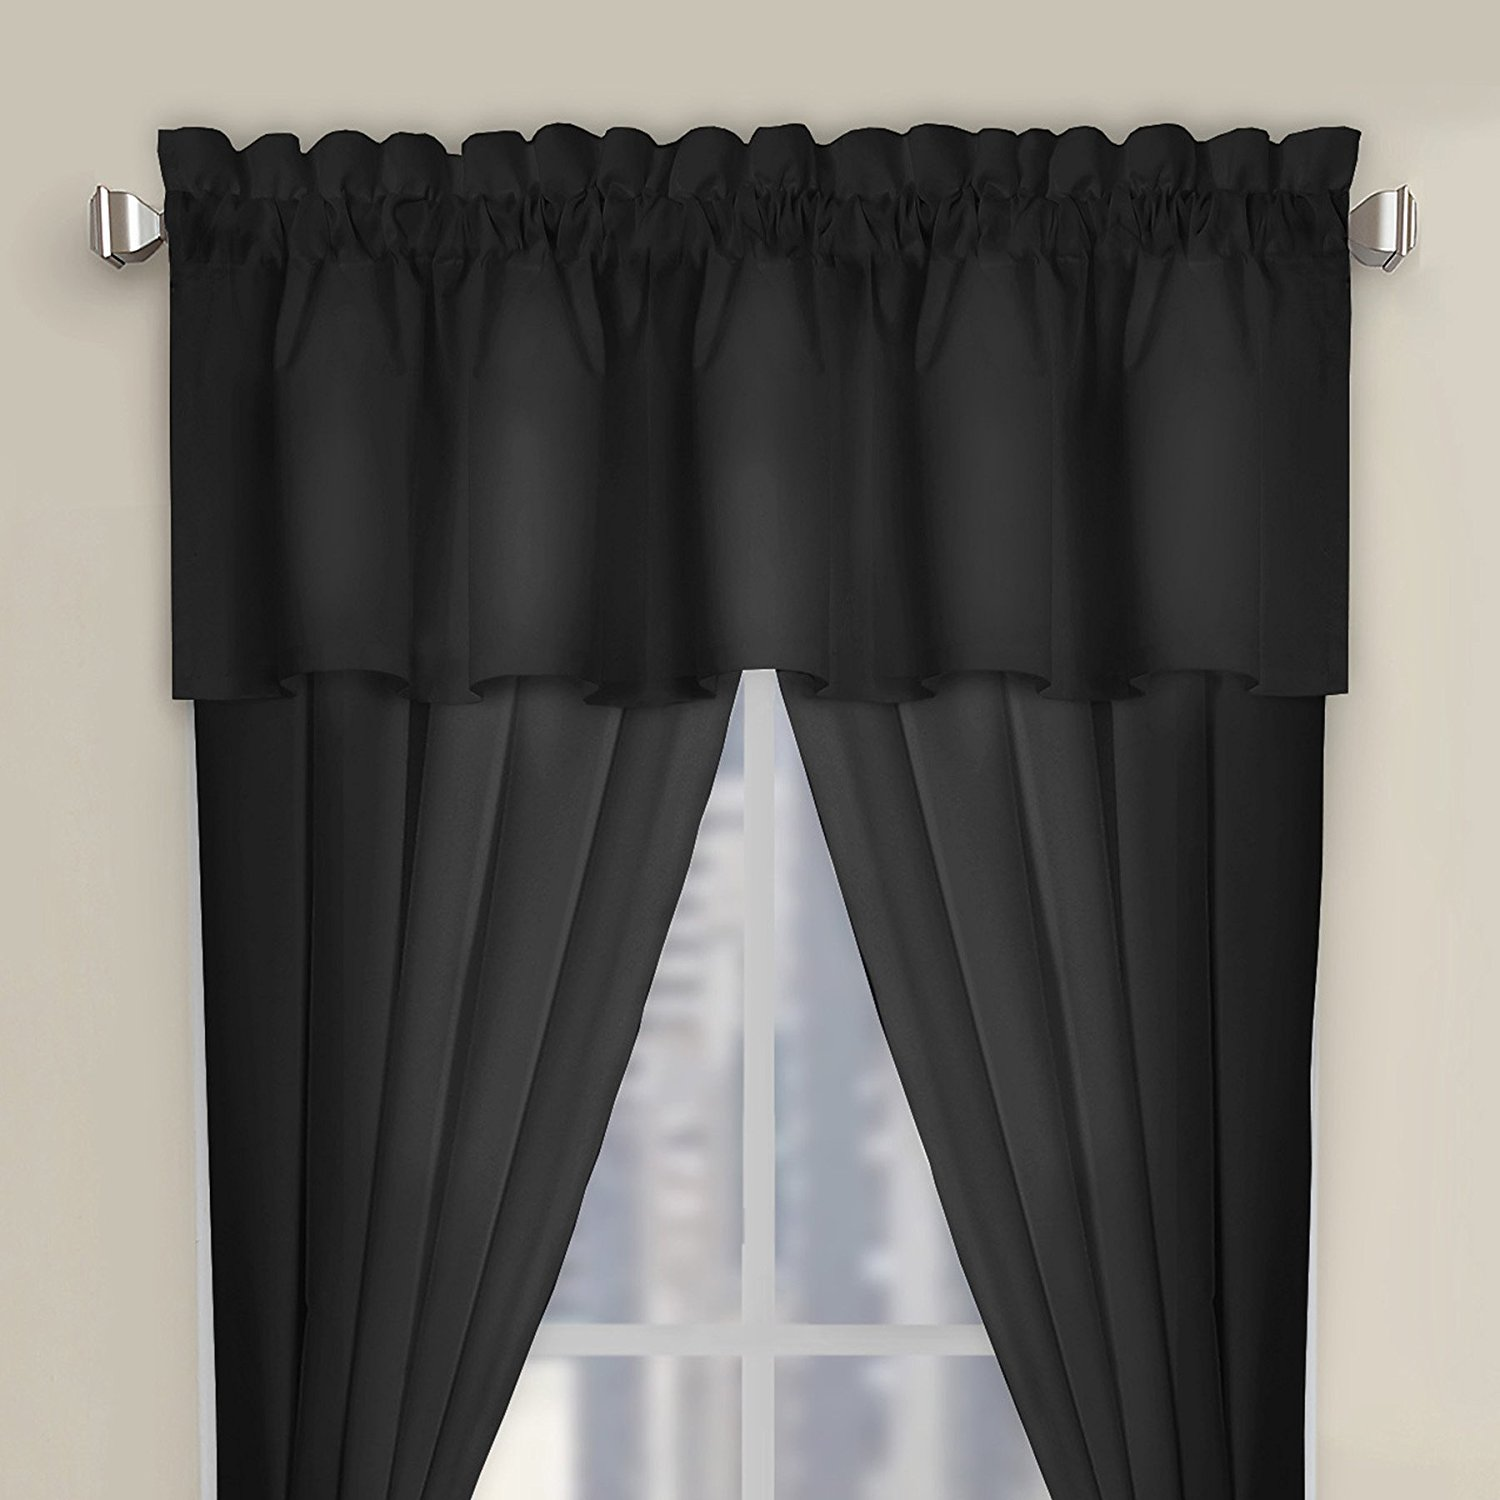 Get Quotations · Luxury Microfiber Tailored Valance   Window Valance    Perfect Curtain Valances For Bedroom, Kitchen Or